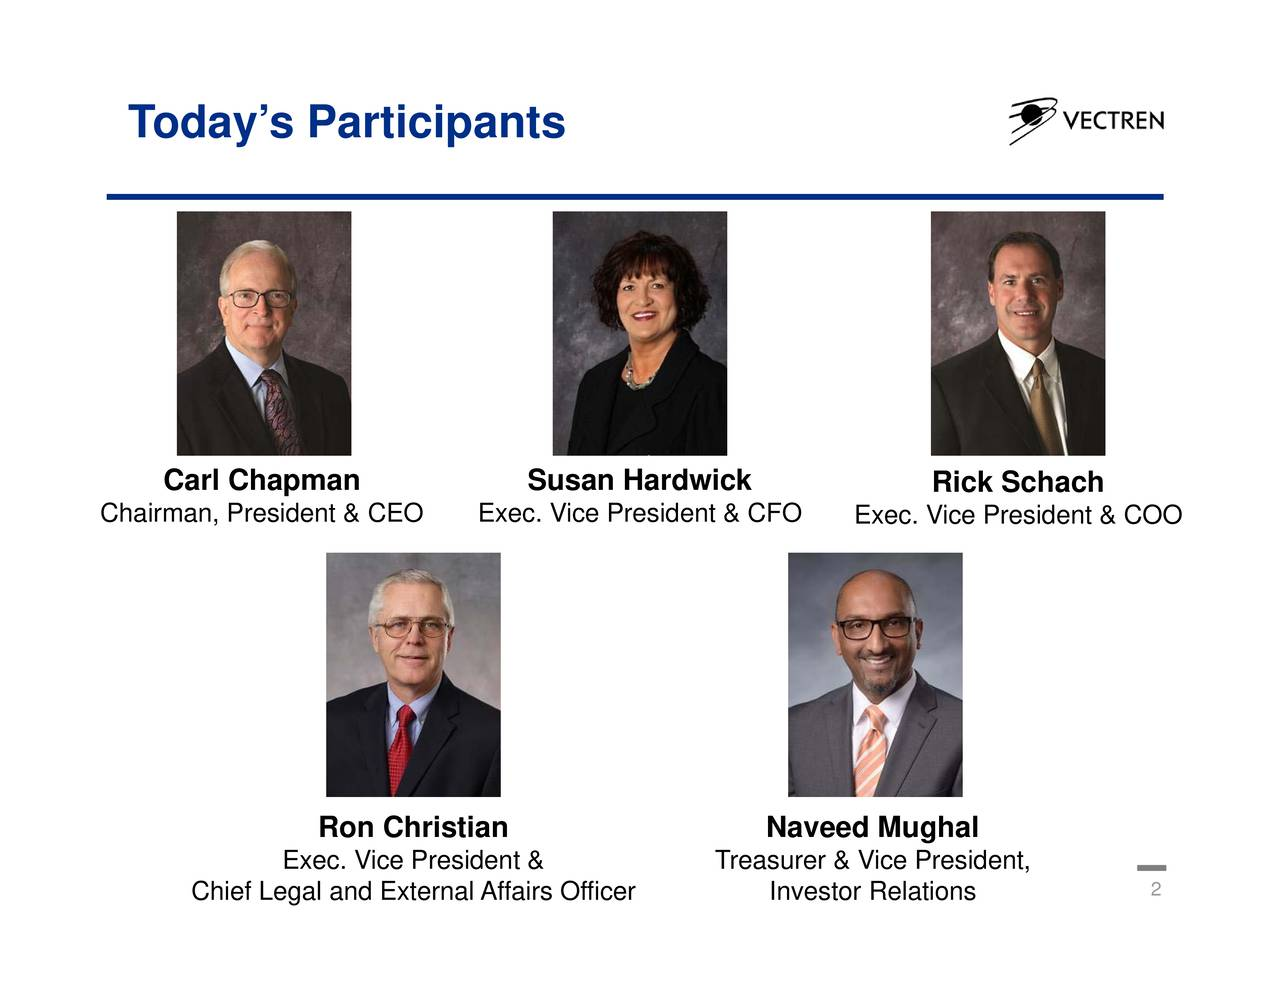 Rick Schach Exec. Vice President & COO Naveed Mughal Relations Treasurer & Vice President, Susan Hardwick Exec. Vice President & CFO Ron Christian Exec. Vice President & Chief Legal and External Affairs Officer Carl Chapman Todays Participants Chairman, President & CEO